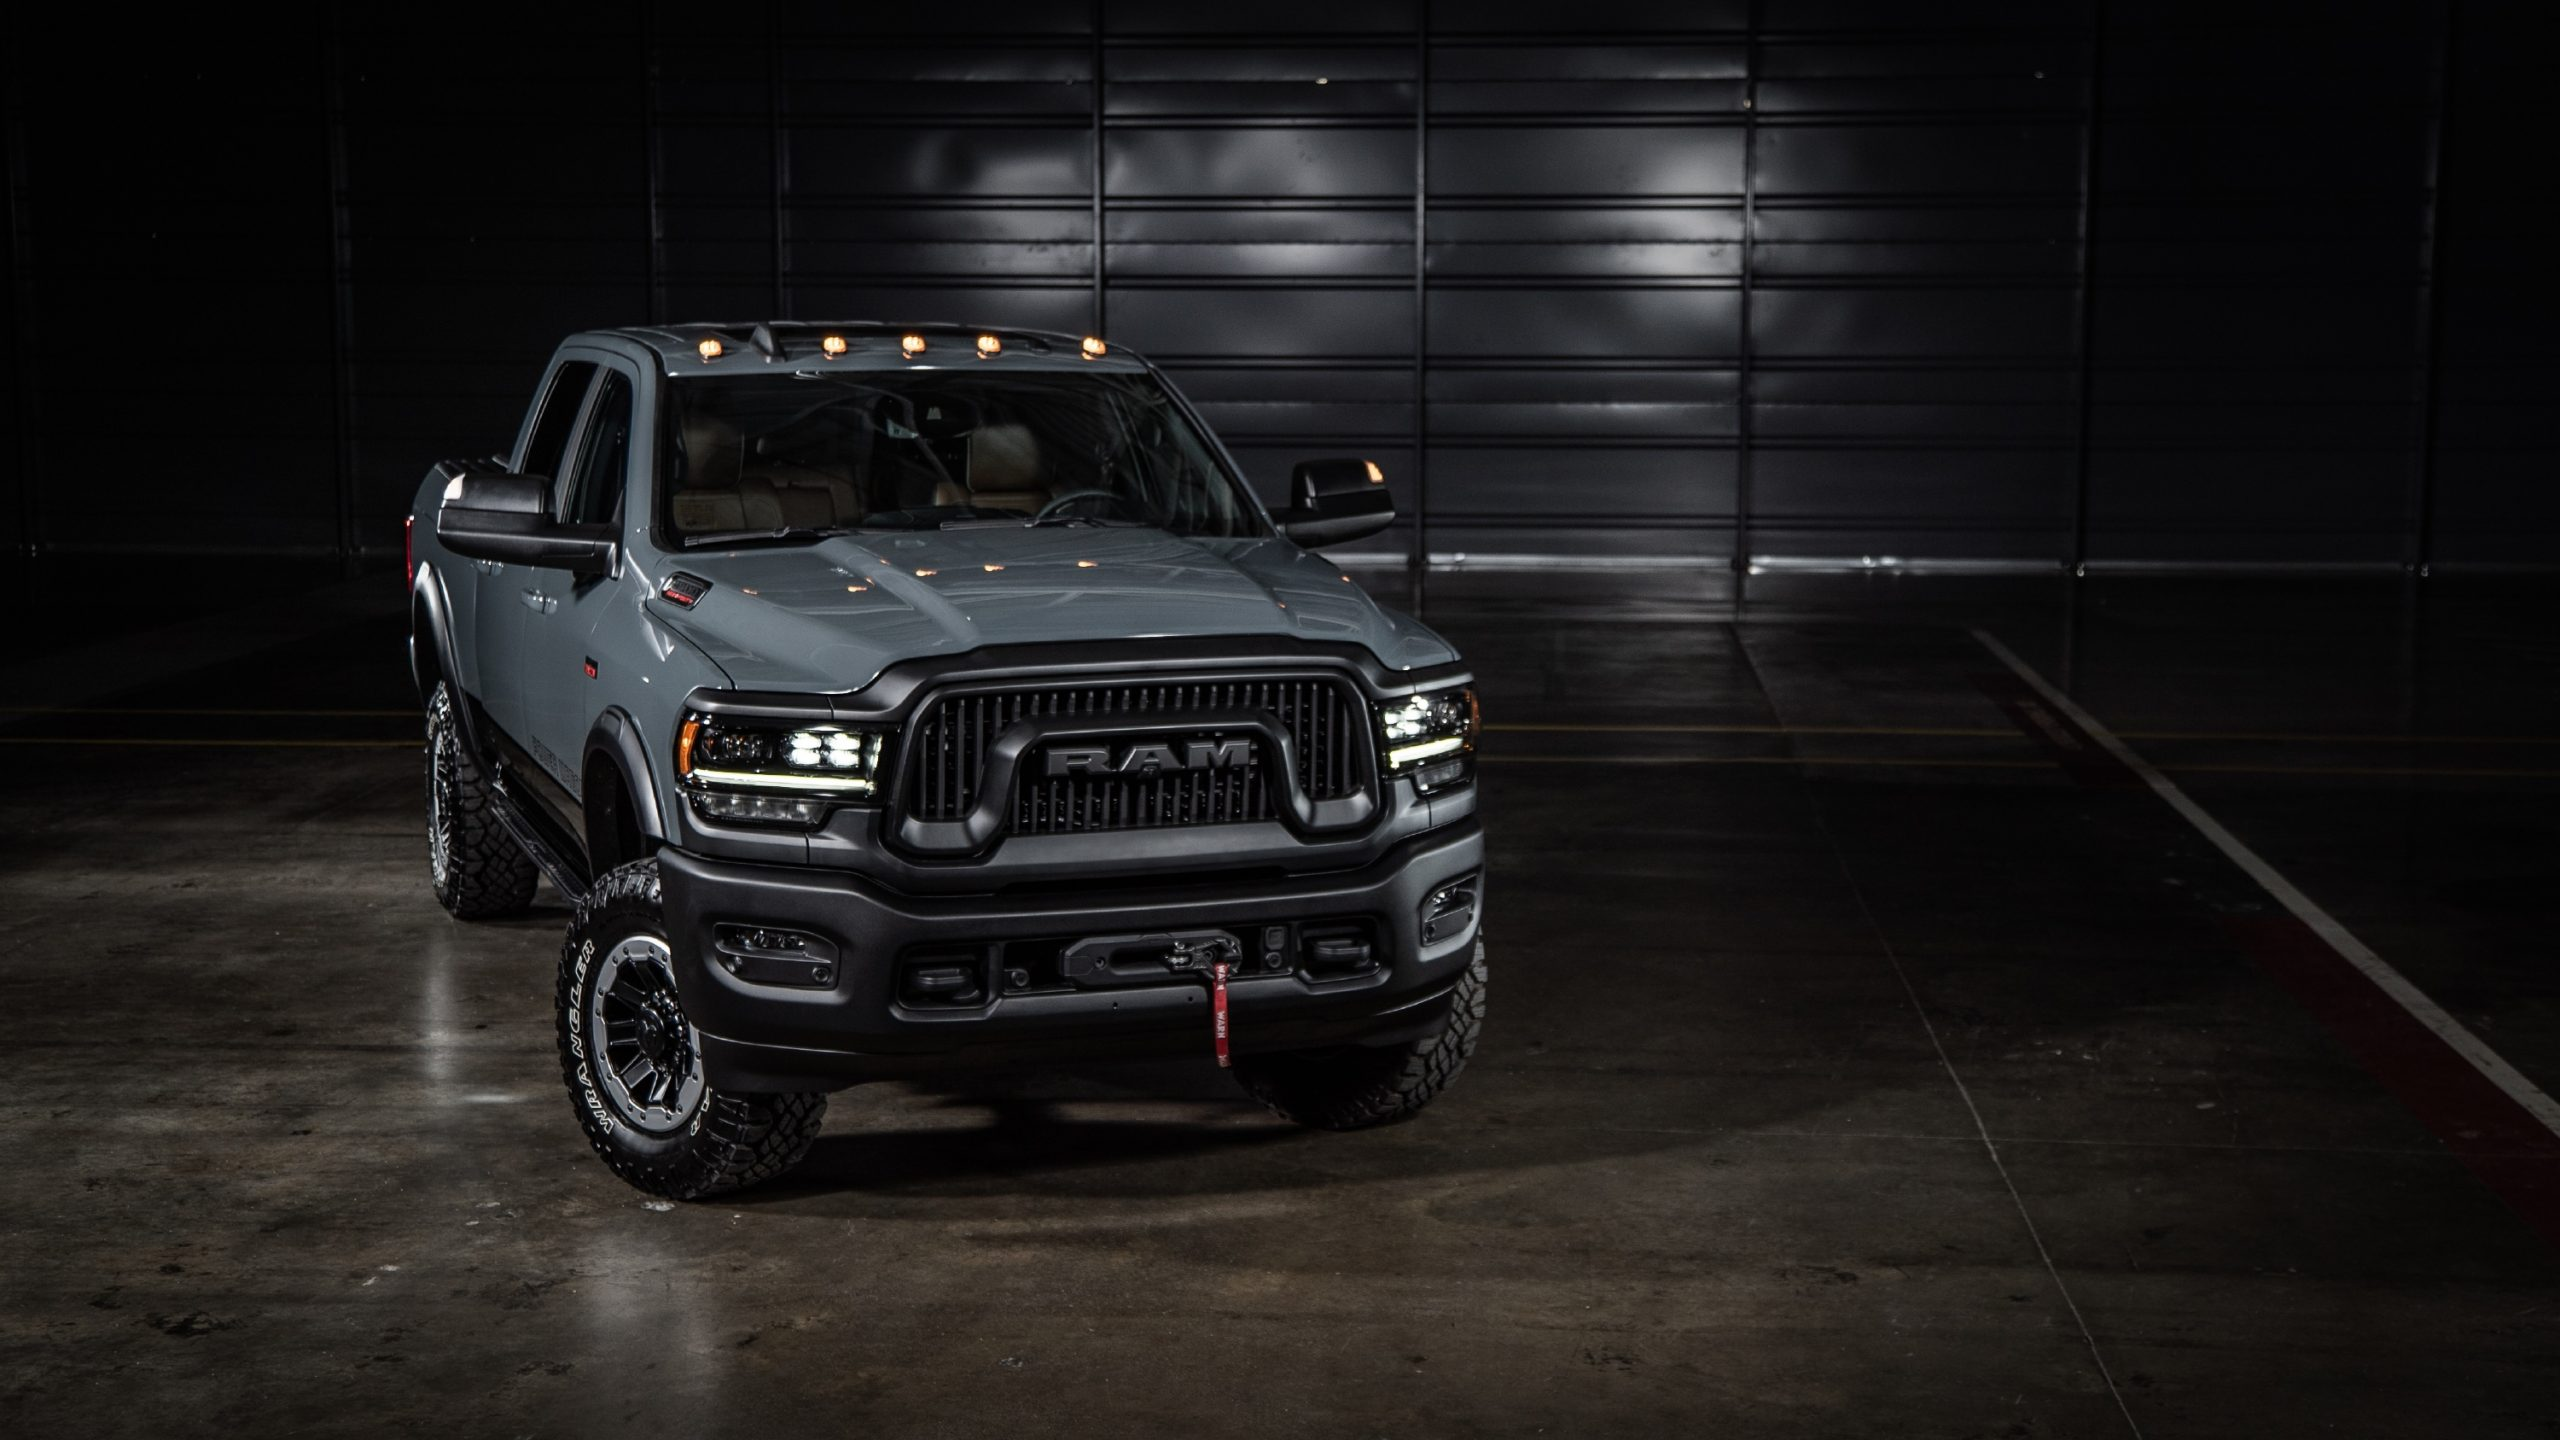 2021 Ram Power Wagon 75th Anniversary Edition front 3/4